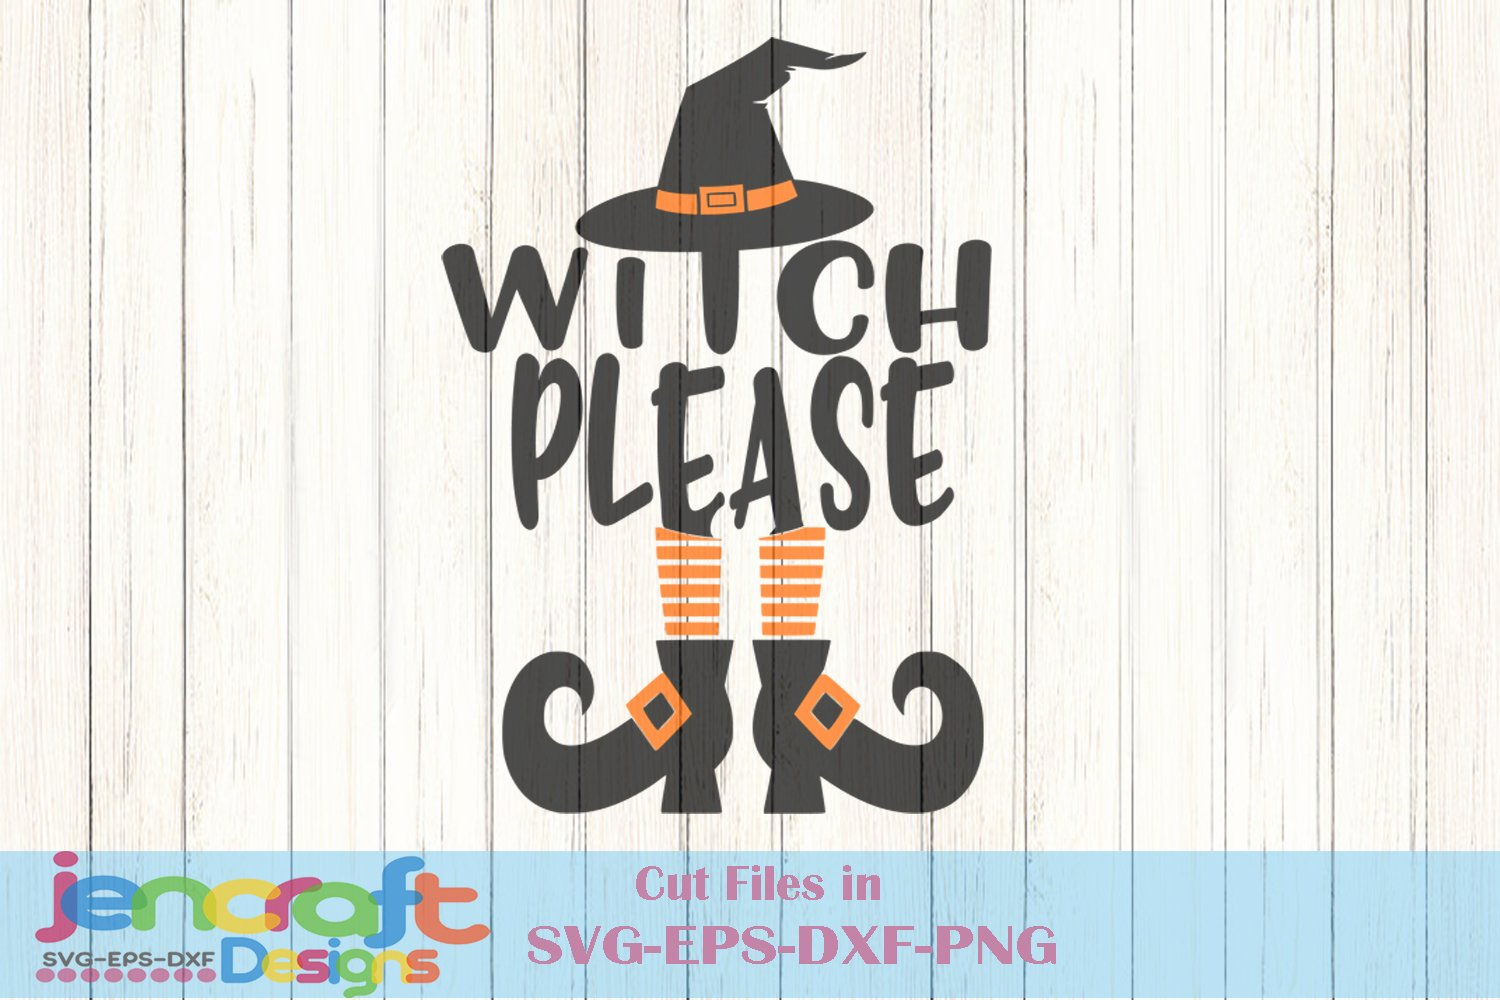 Witch Please Halloween Svg File Witch Legs Dxf Eps Png 135709 Svgs Design Bundles